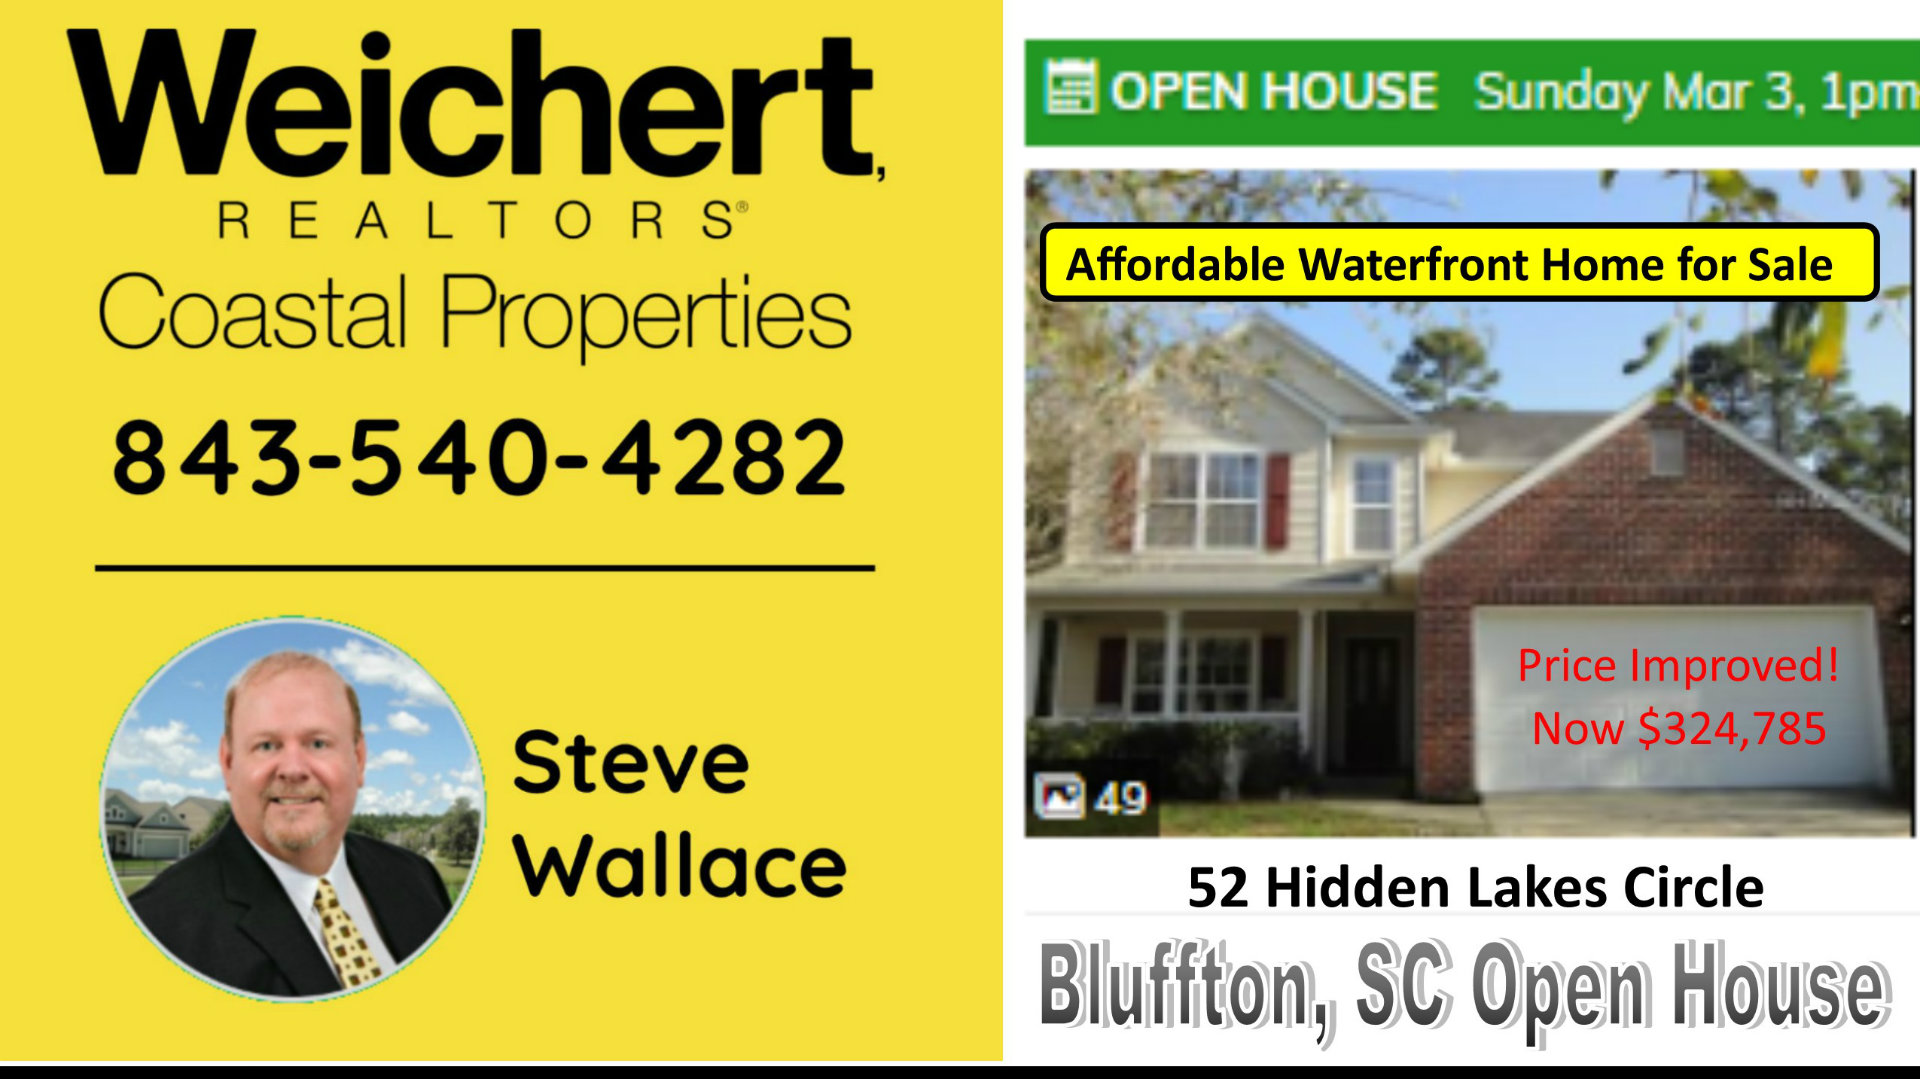 Affordable, Waterfront, Home, Bluffton, SC, Open House